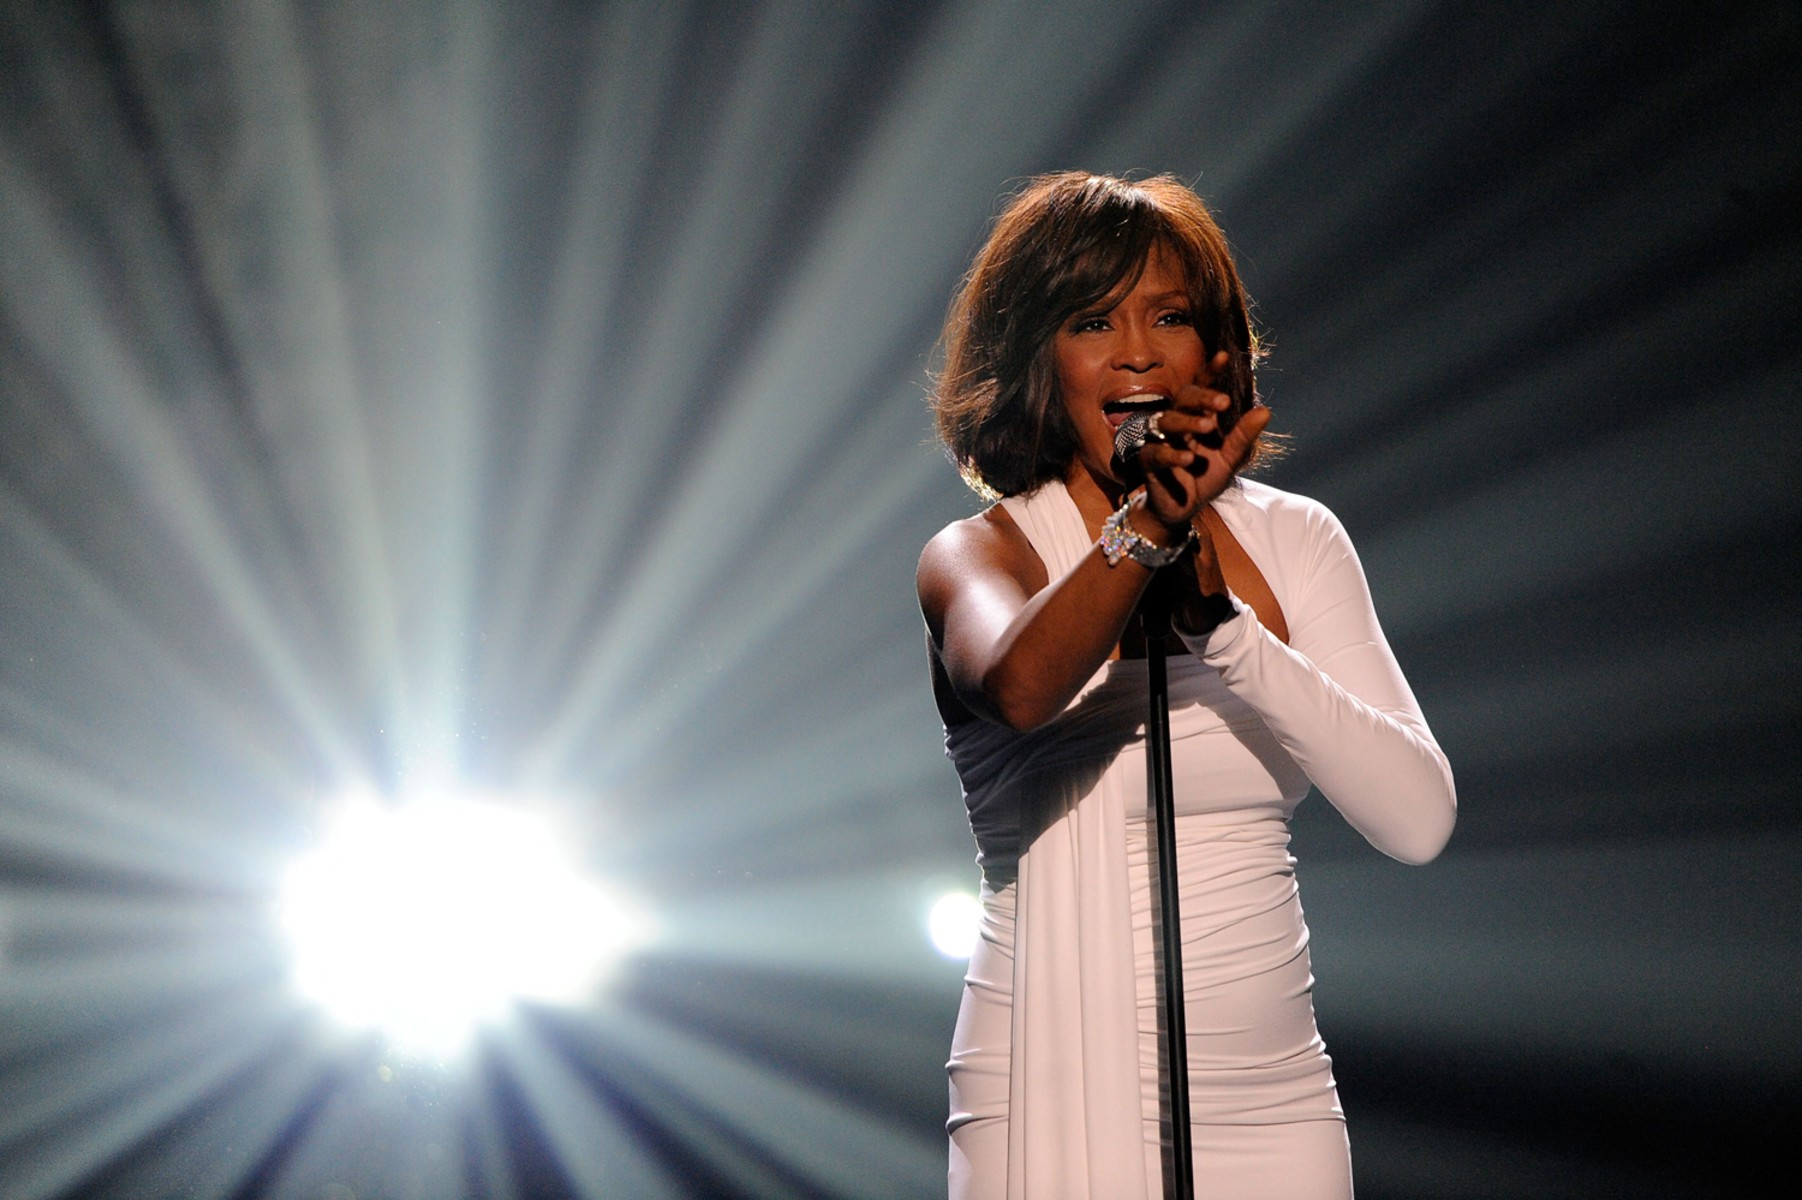 a biography of whitney elizabeth houston a grammy award winning american This pin was discovered by timothy harlow discover (and save) your own pins on pinterest.